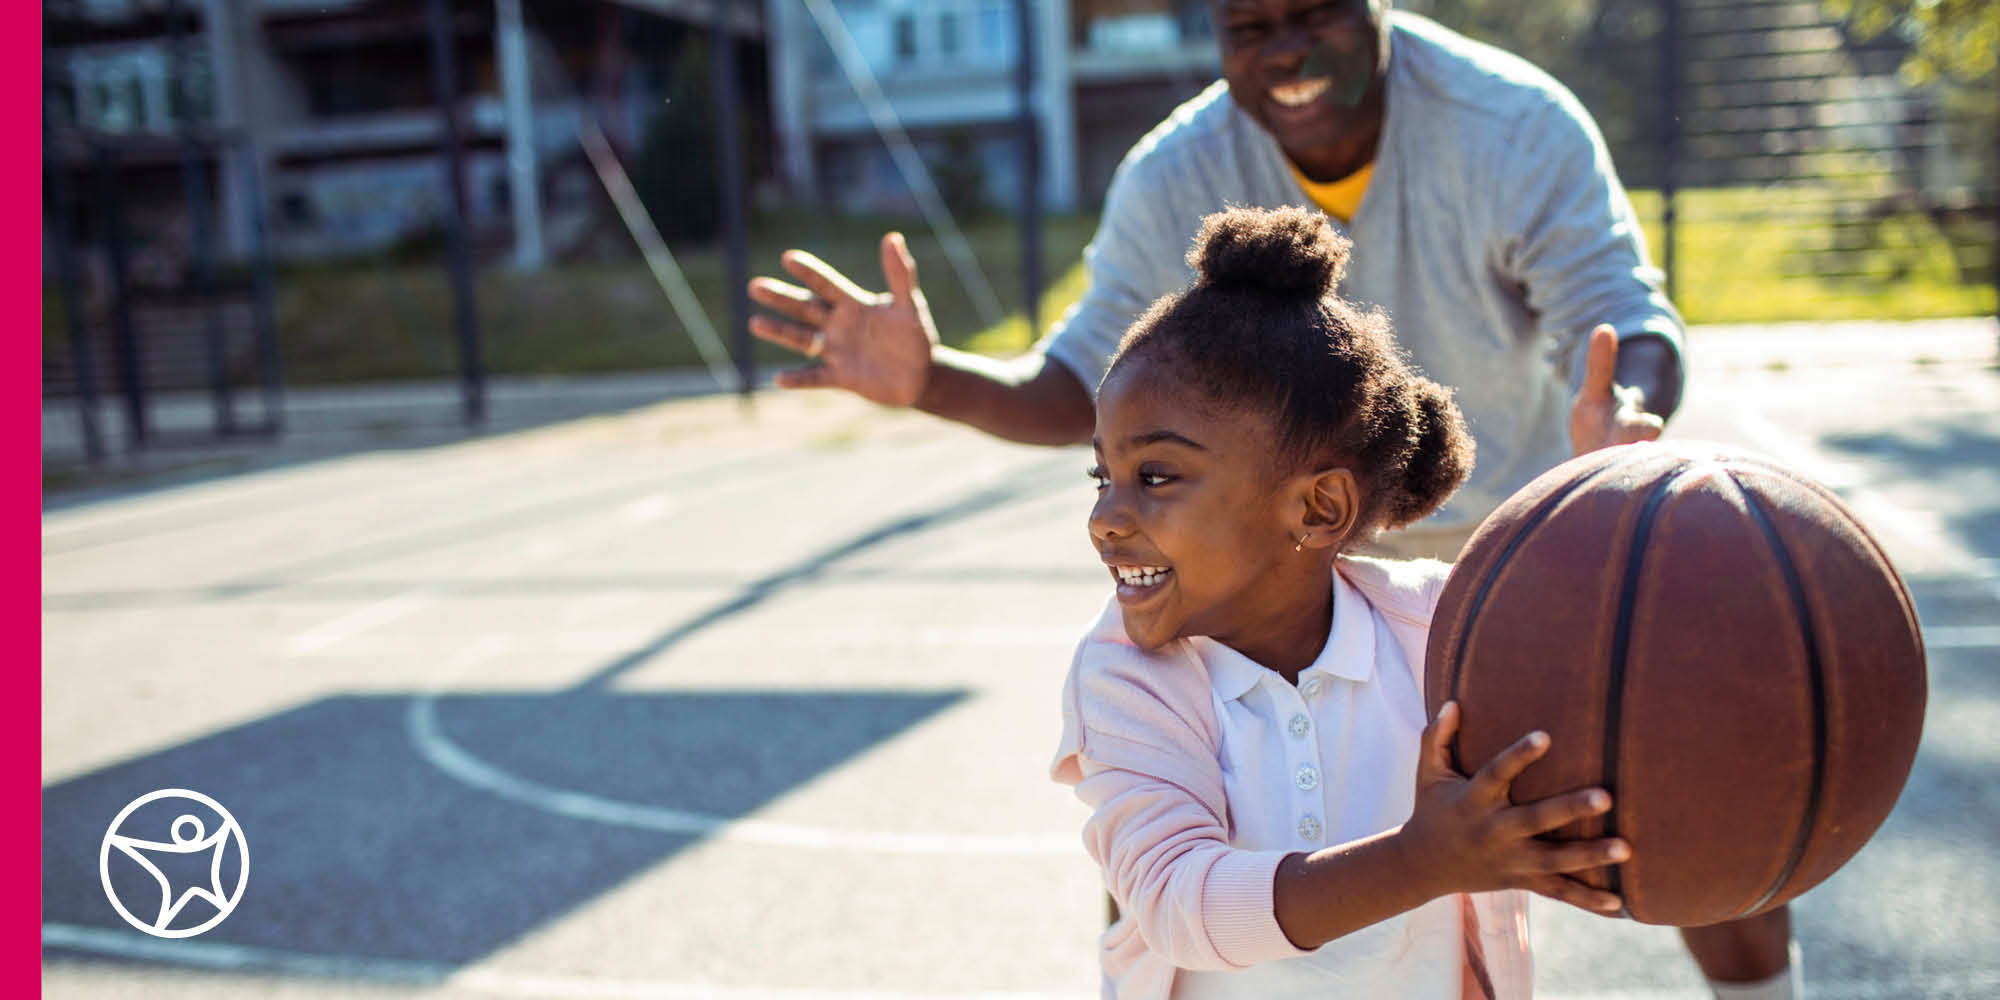 Elementary school-aged girl playing basketball with an adult male